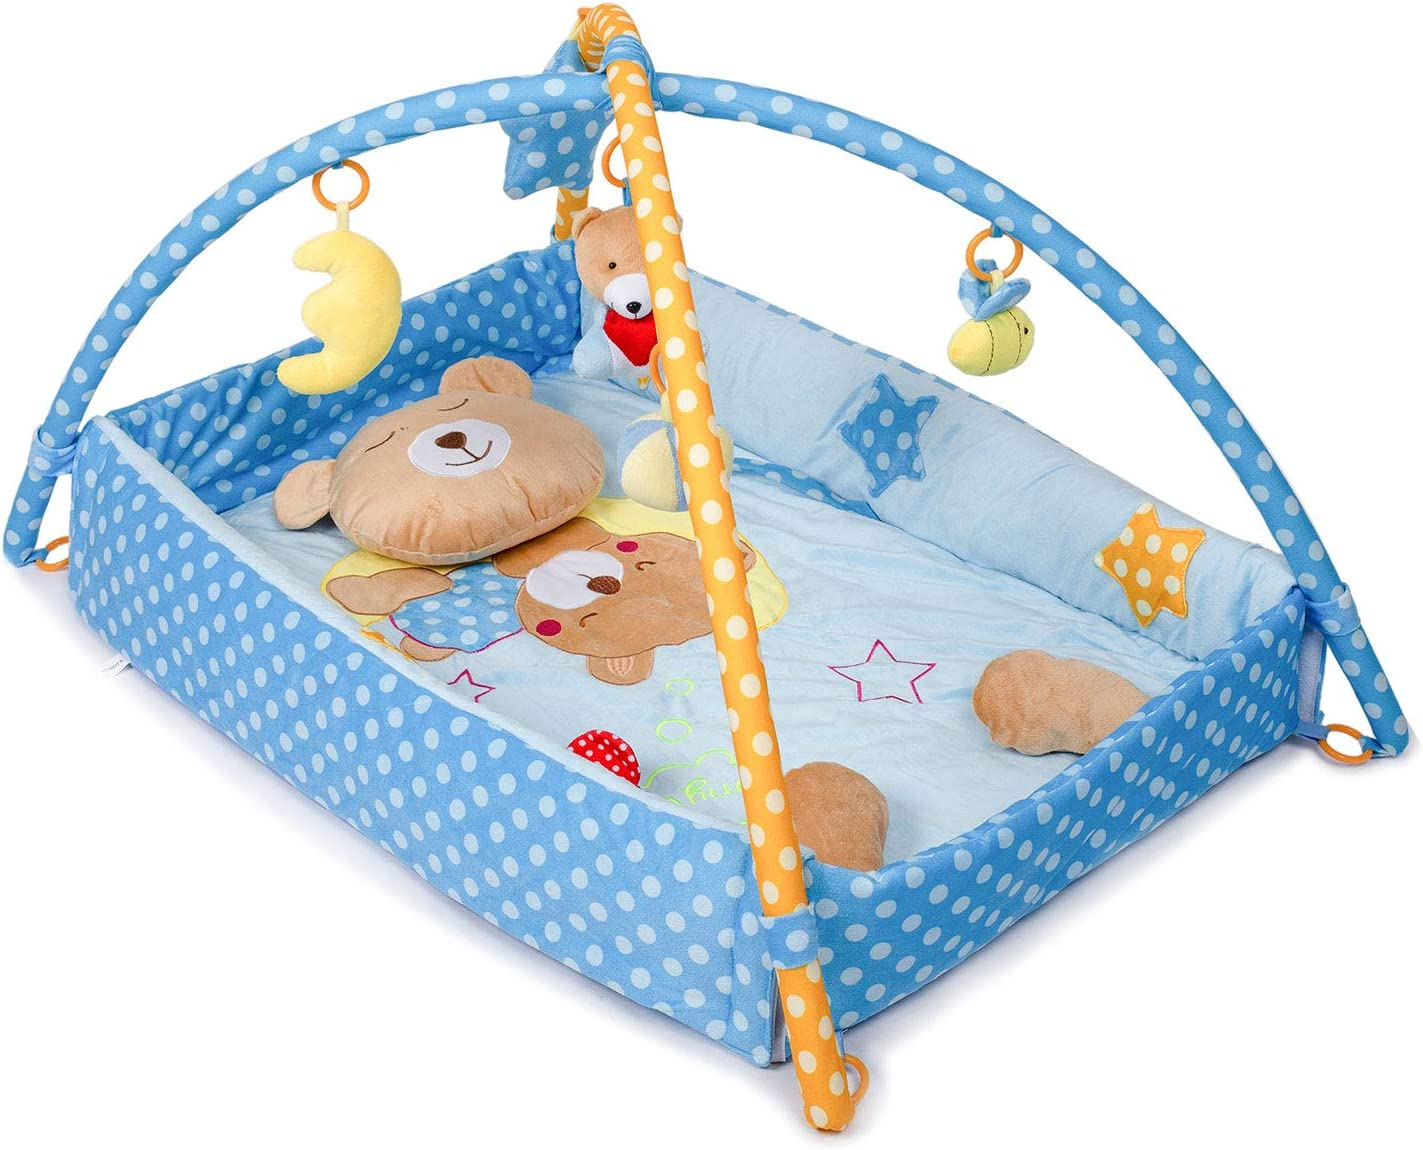 Kinbor Baby Super Deluxe Tummy Time Play Mat and Activity Gym